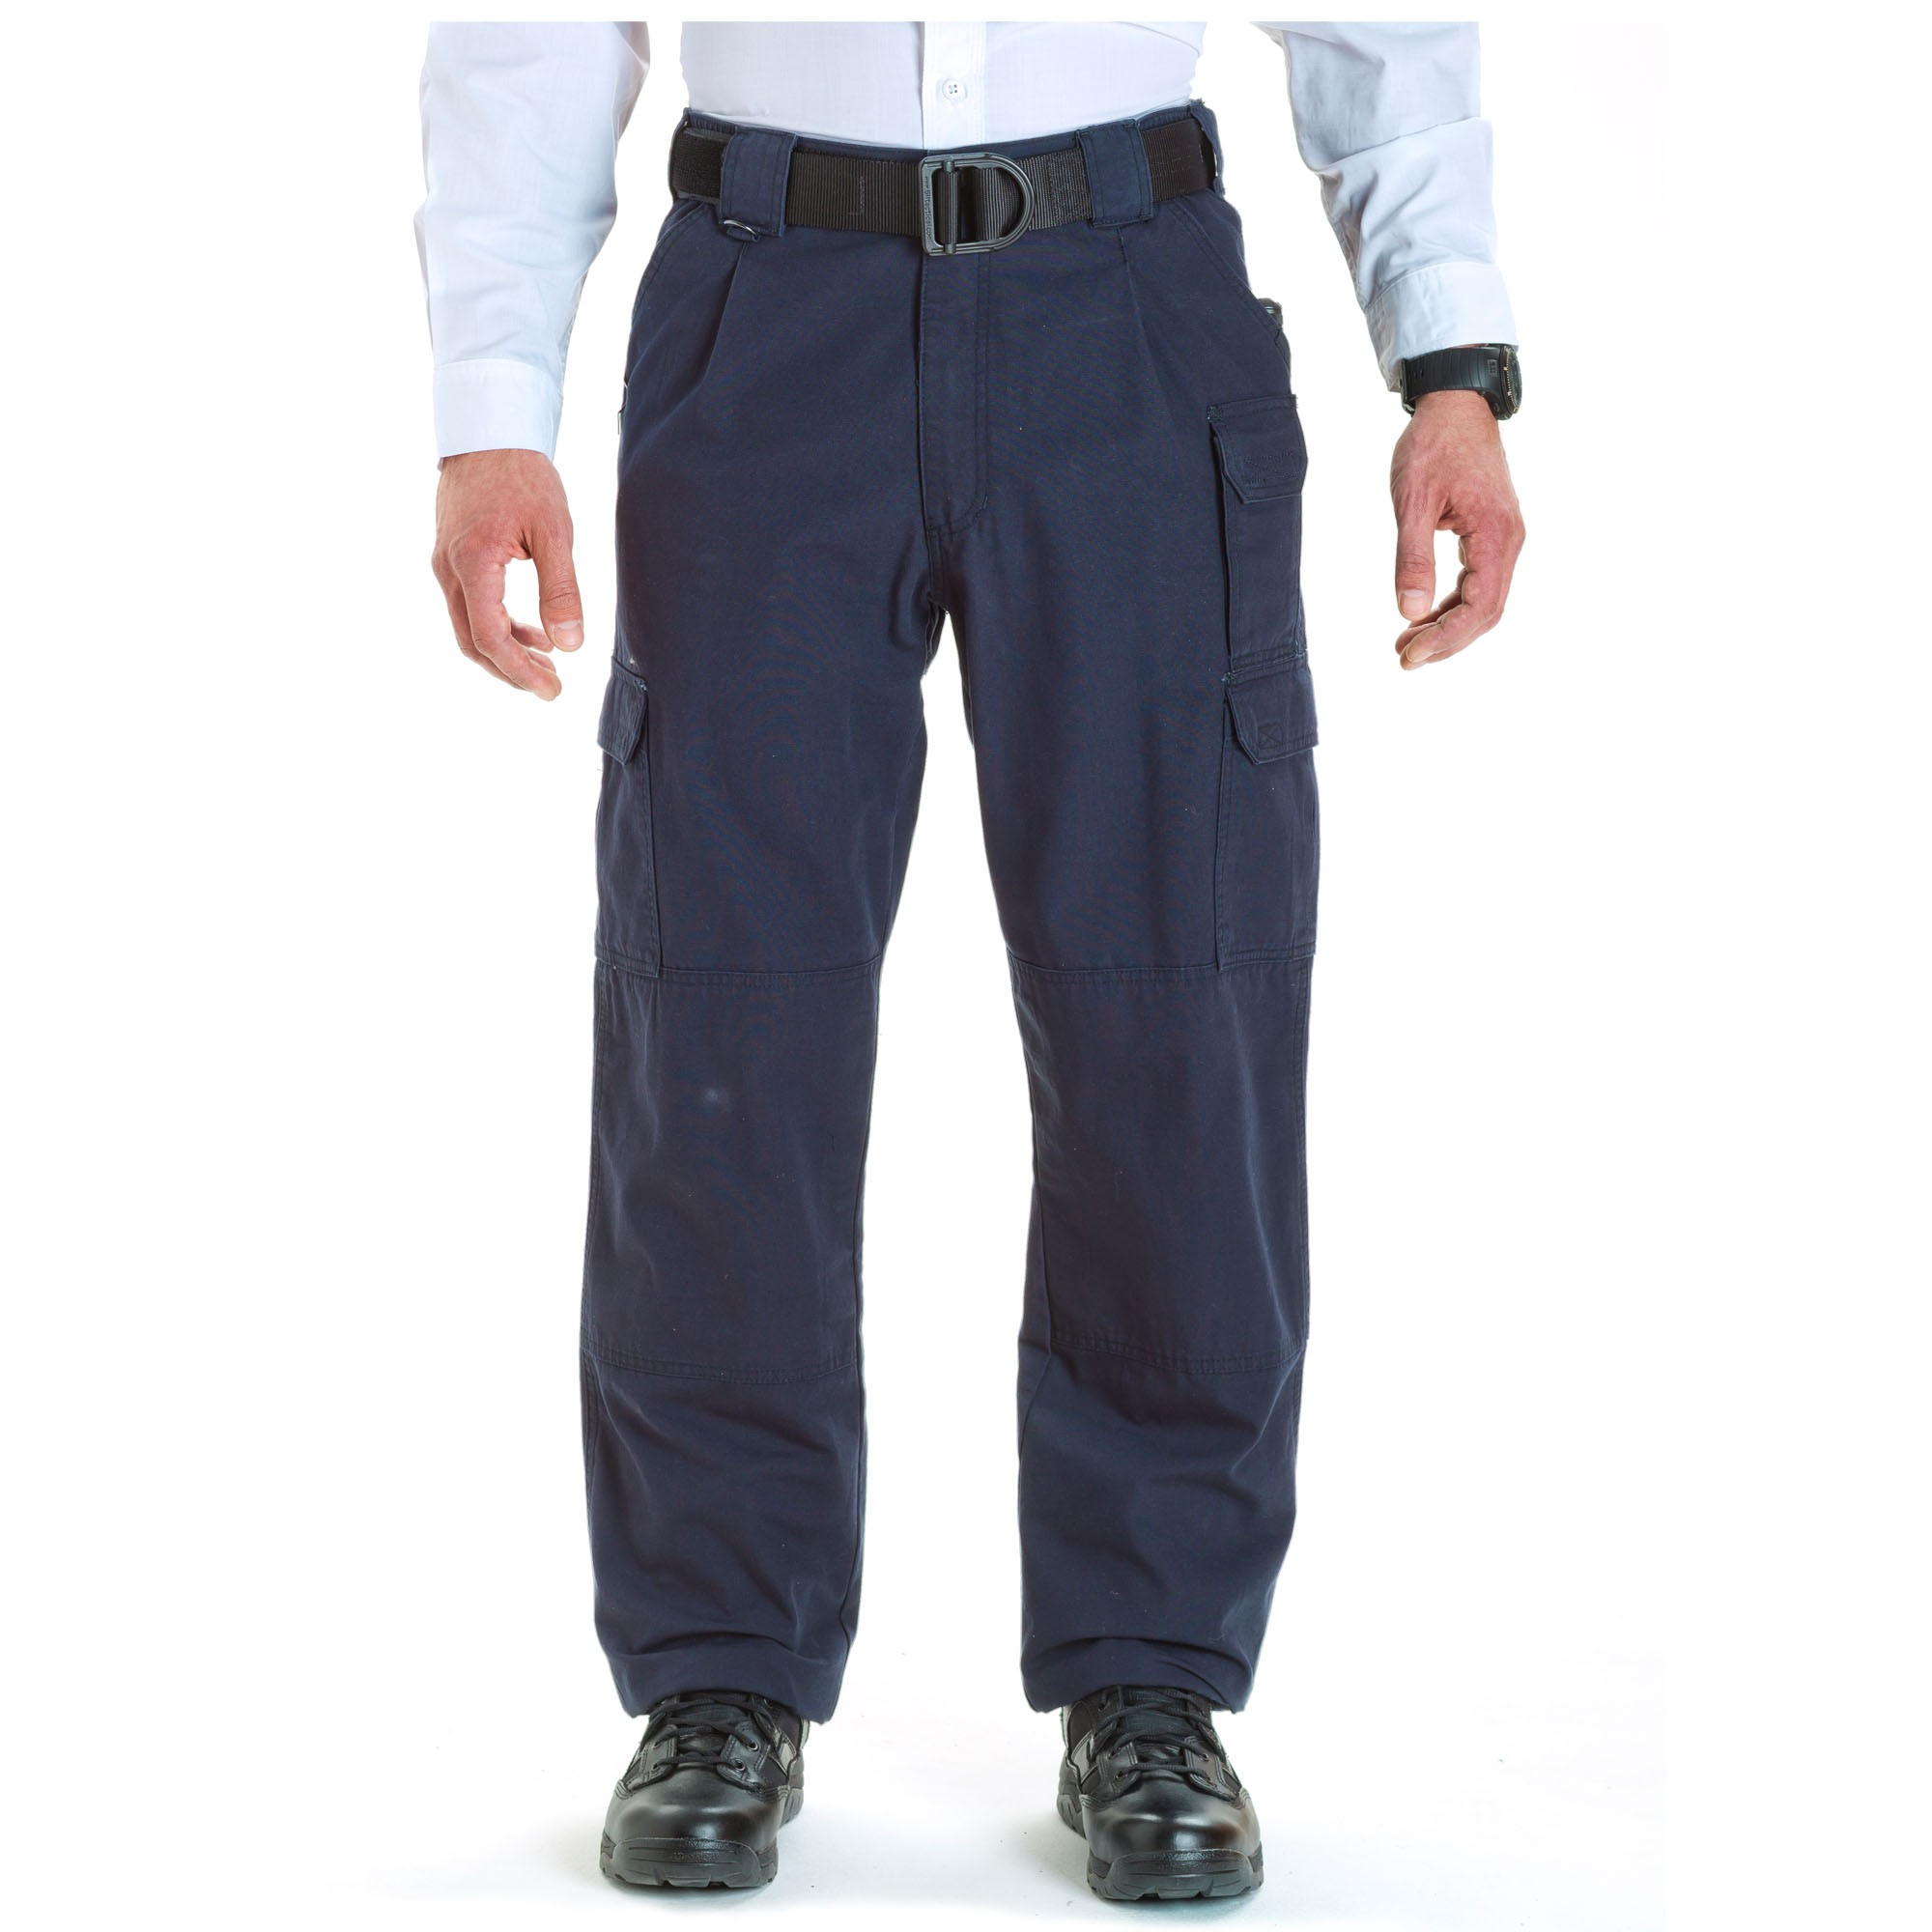 5cac9cab4db 5.11 Tactical Pants Cotton Extra Sizes 74251L